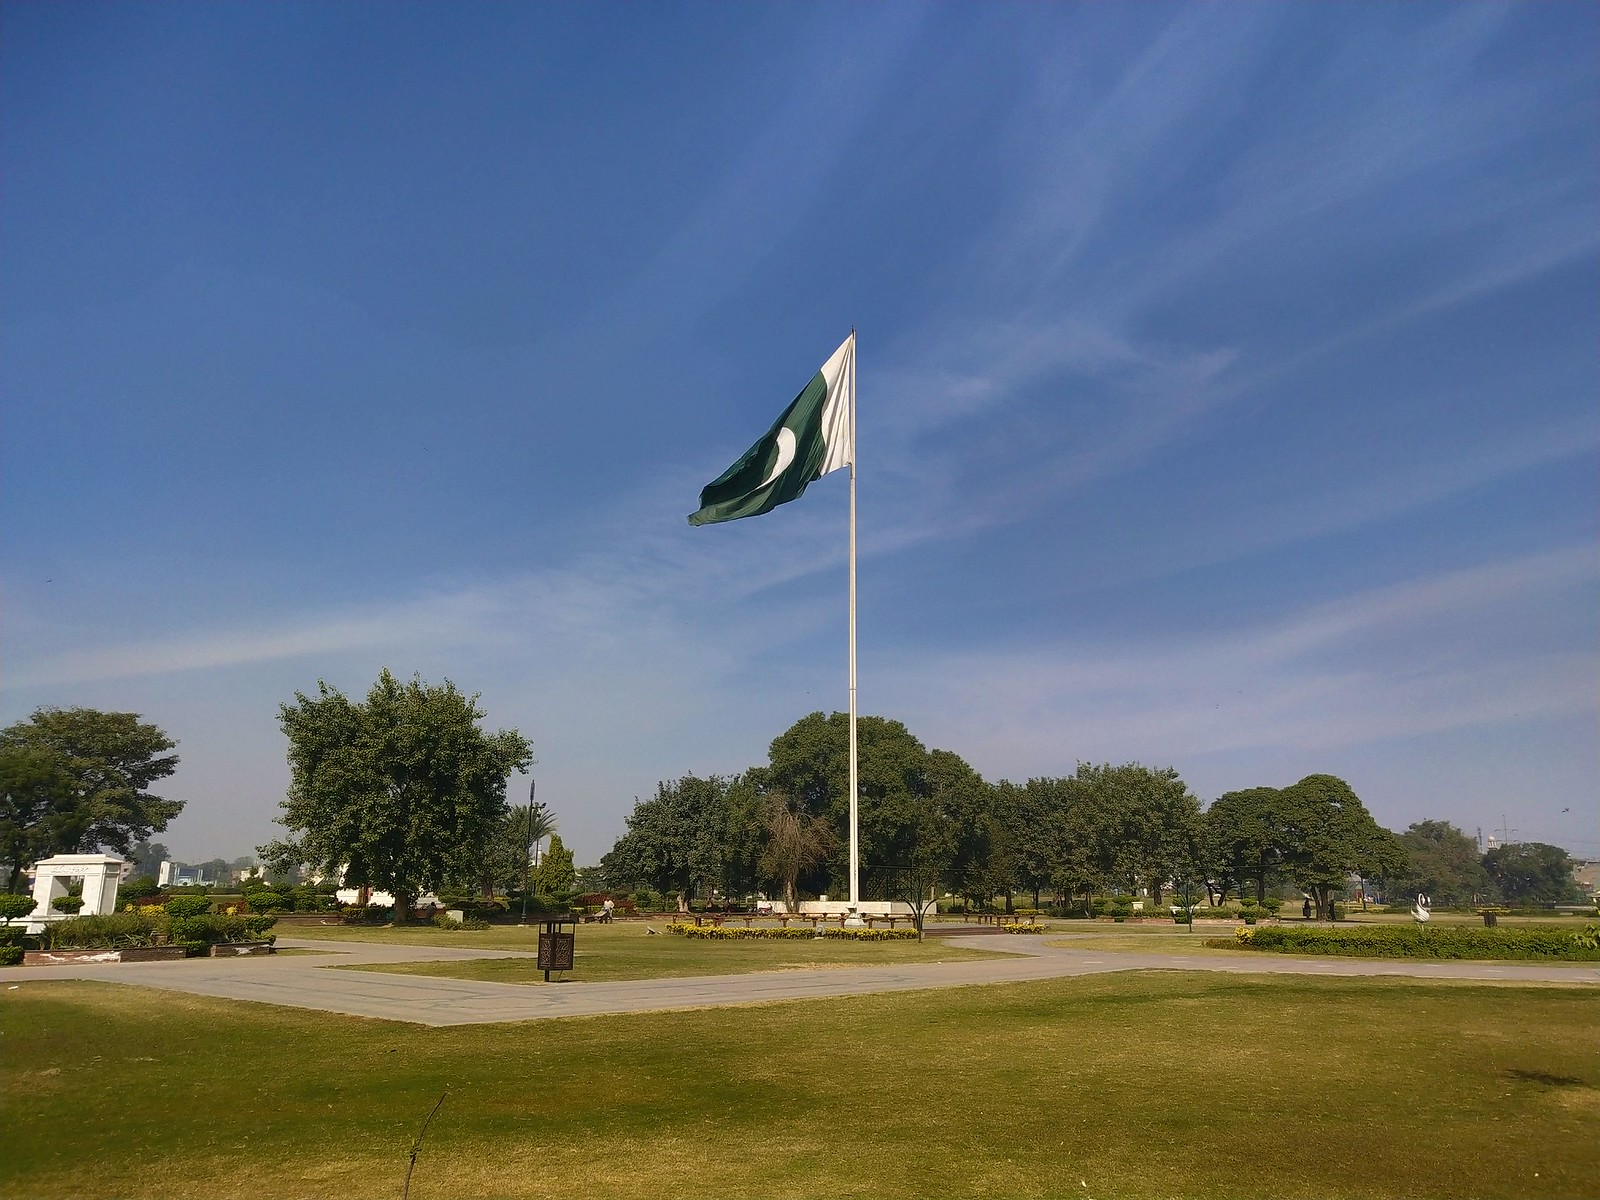 Pakistan Flag Picture with HDR mode on Vivo V11 Pro